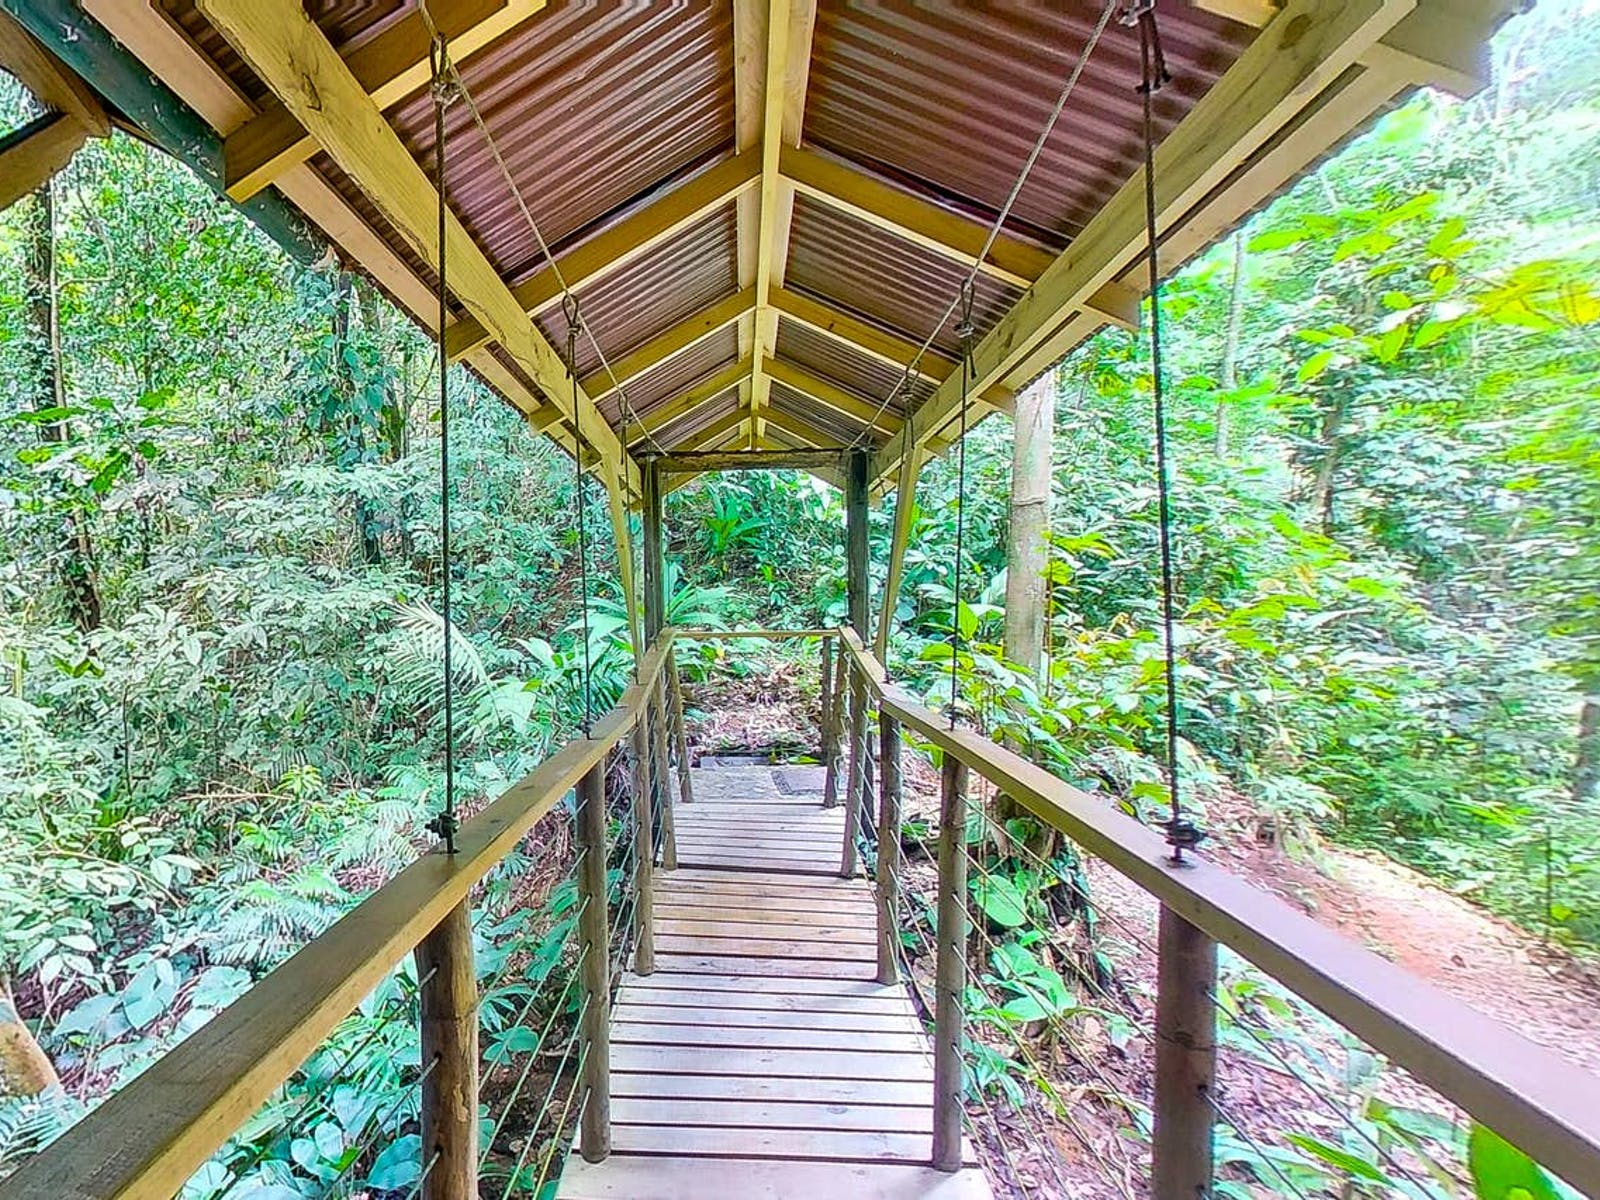 Walkway from tree house rental in Costa Rica extending to a tropical forest